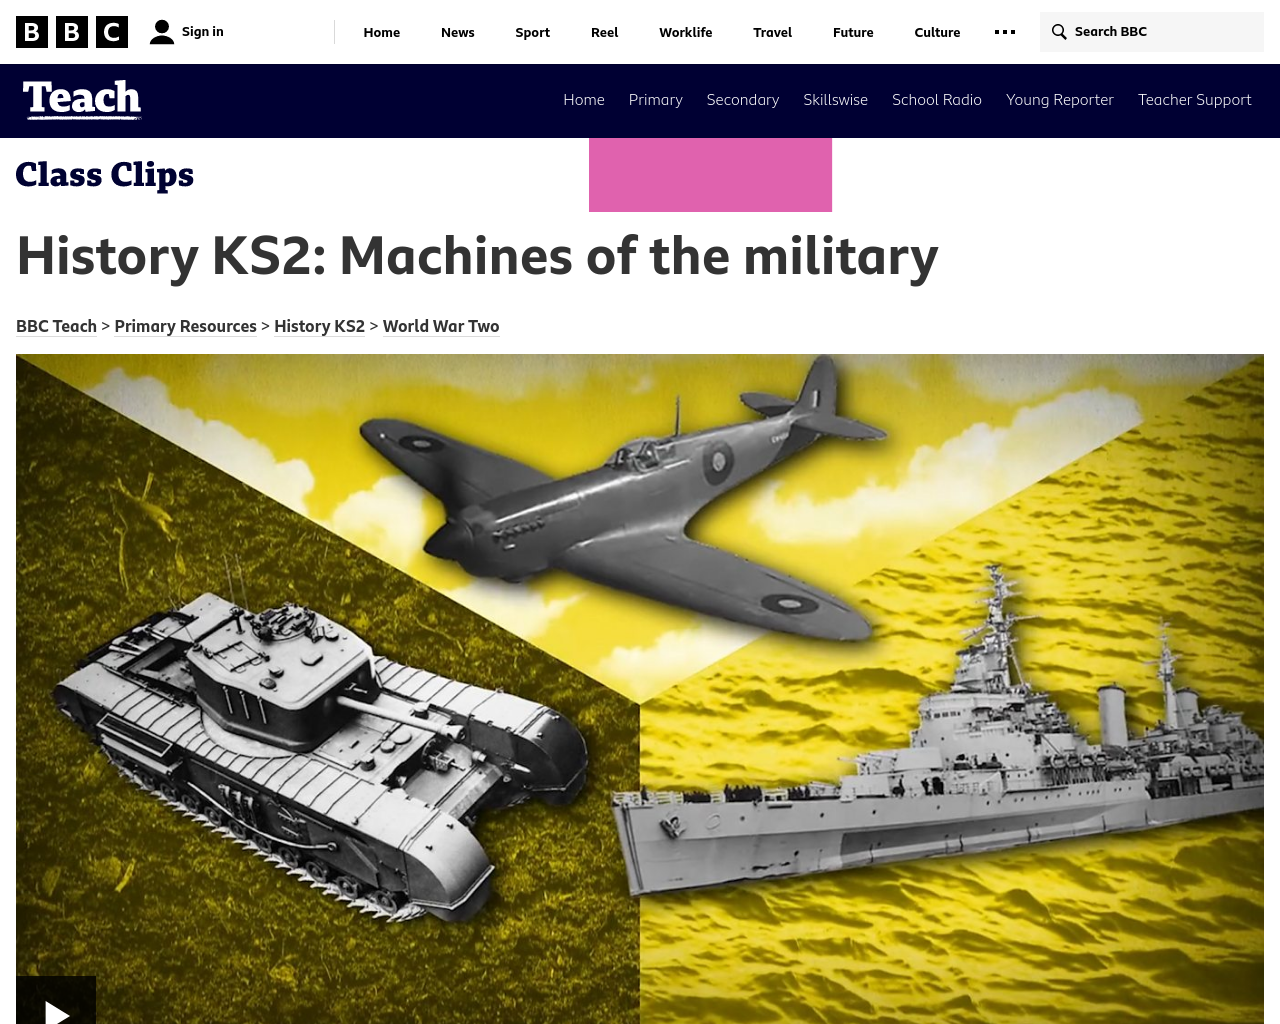 Machines of the Military